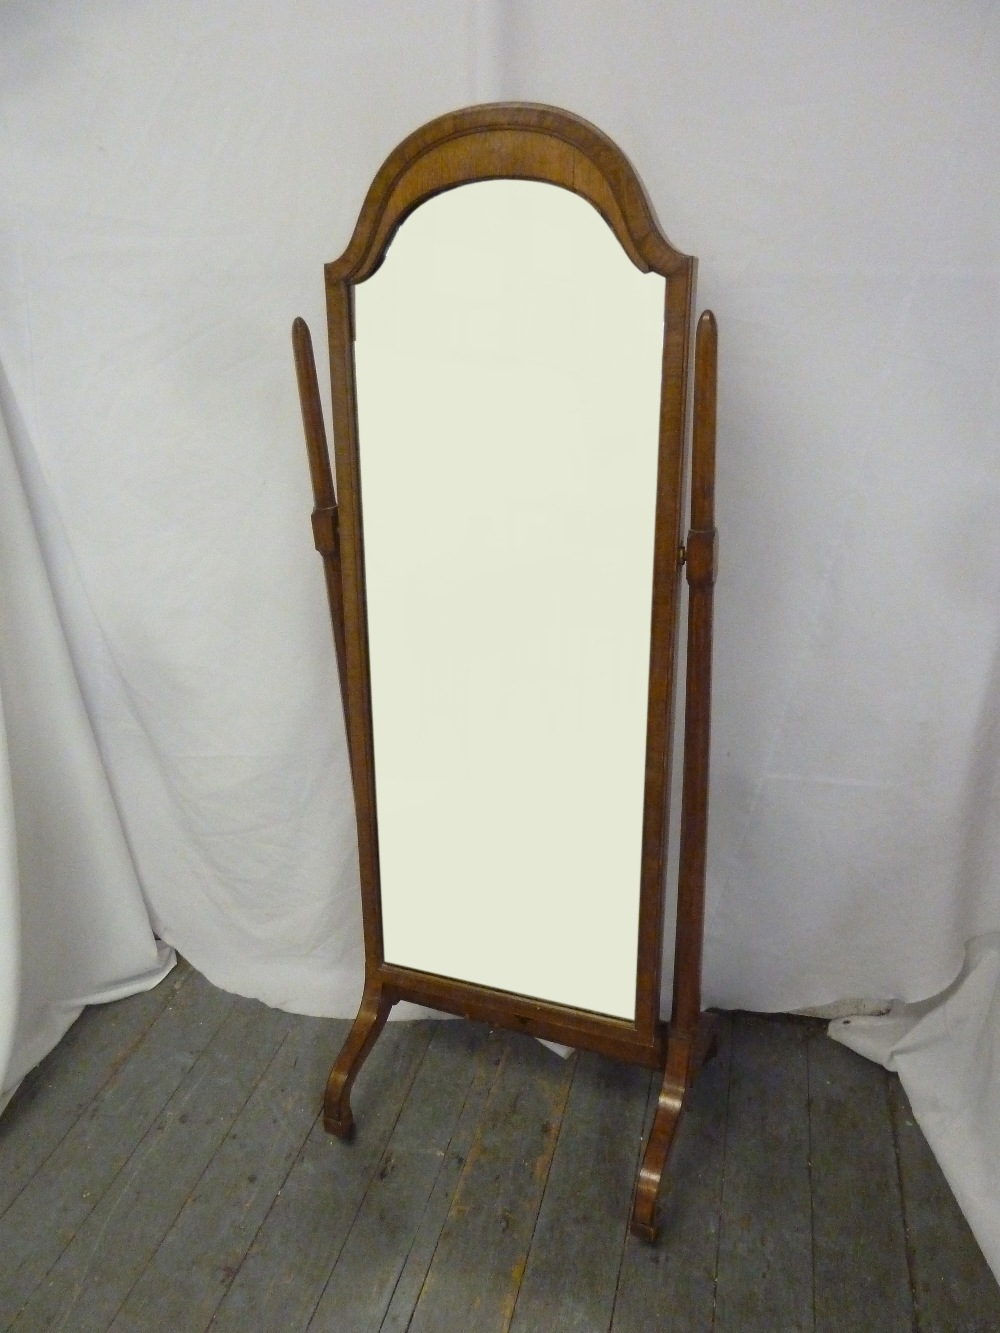 Lot 47 - An Edwardian cheval mirror rectangular with arched top, oak frame and support